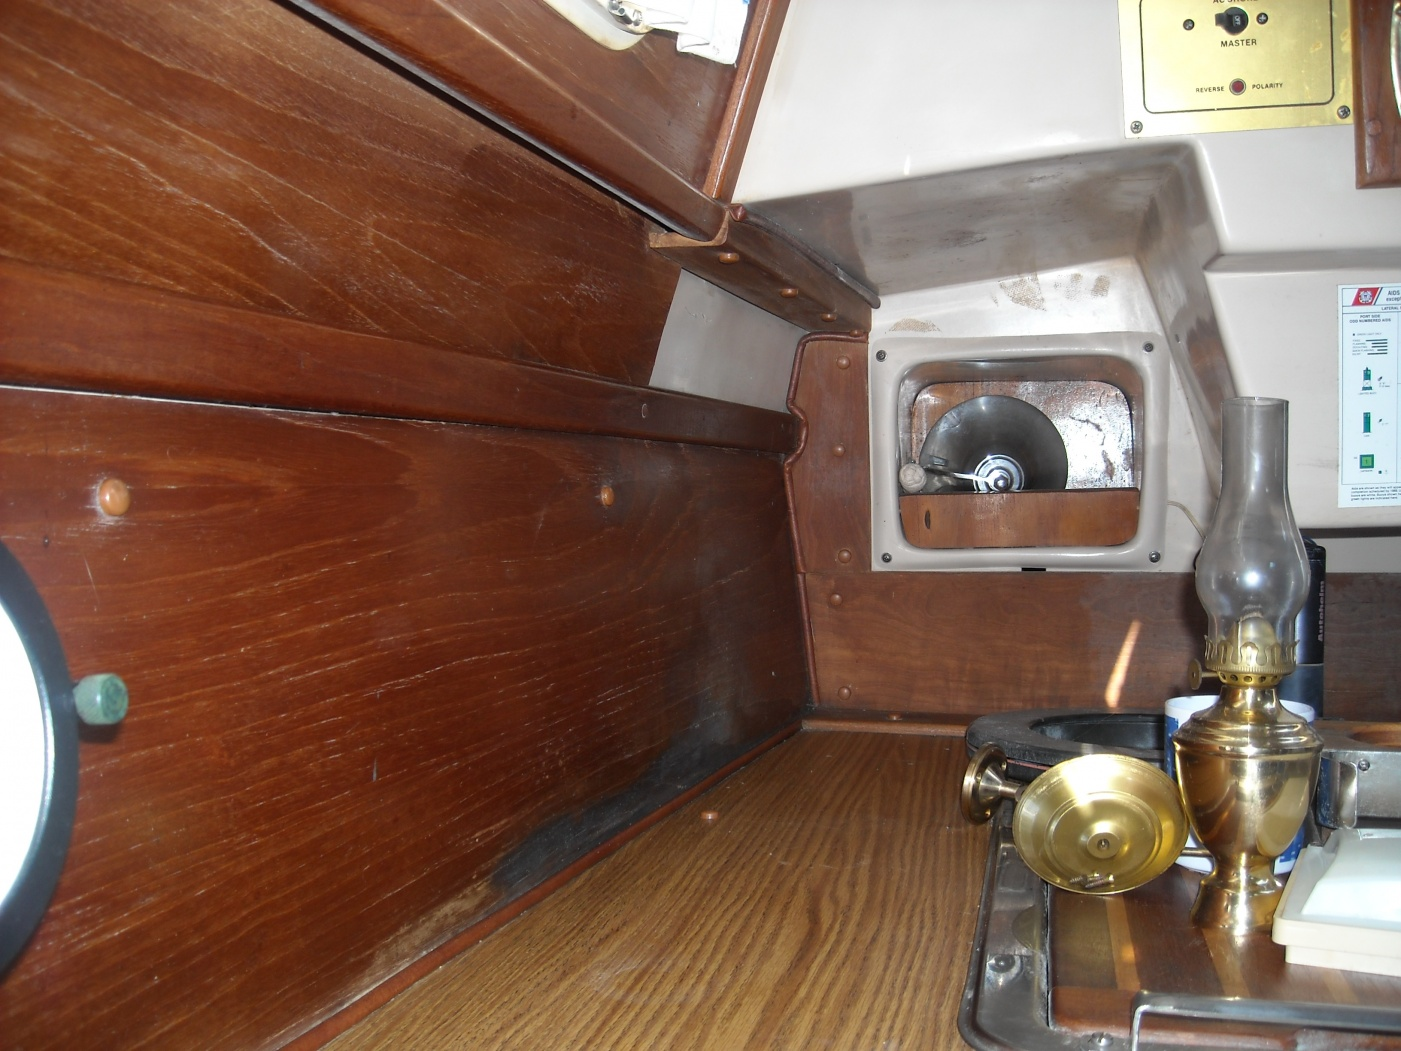 Click image for larger version  Name:HULL DECK SEAM 040.jpg Views:89 Size:420.0 KB ID:36904